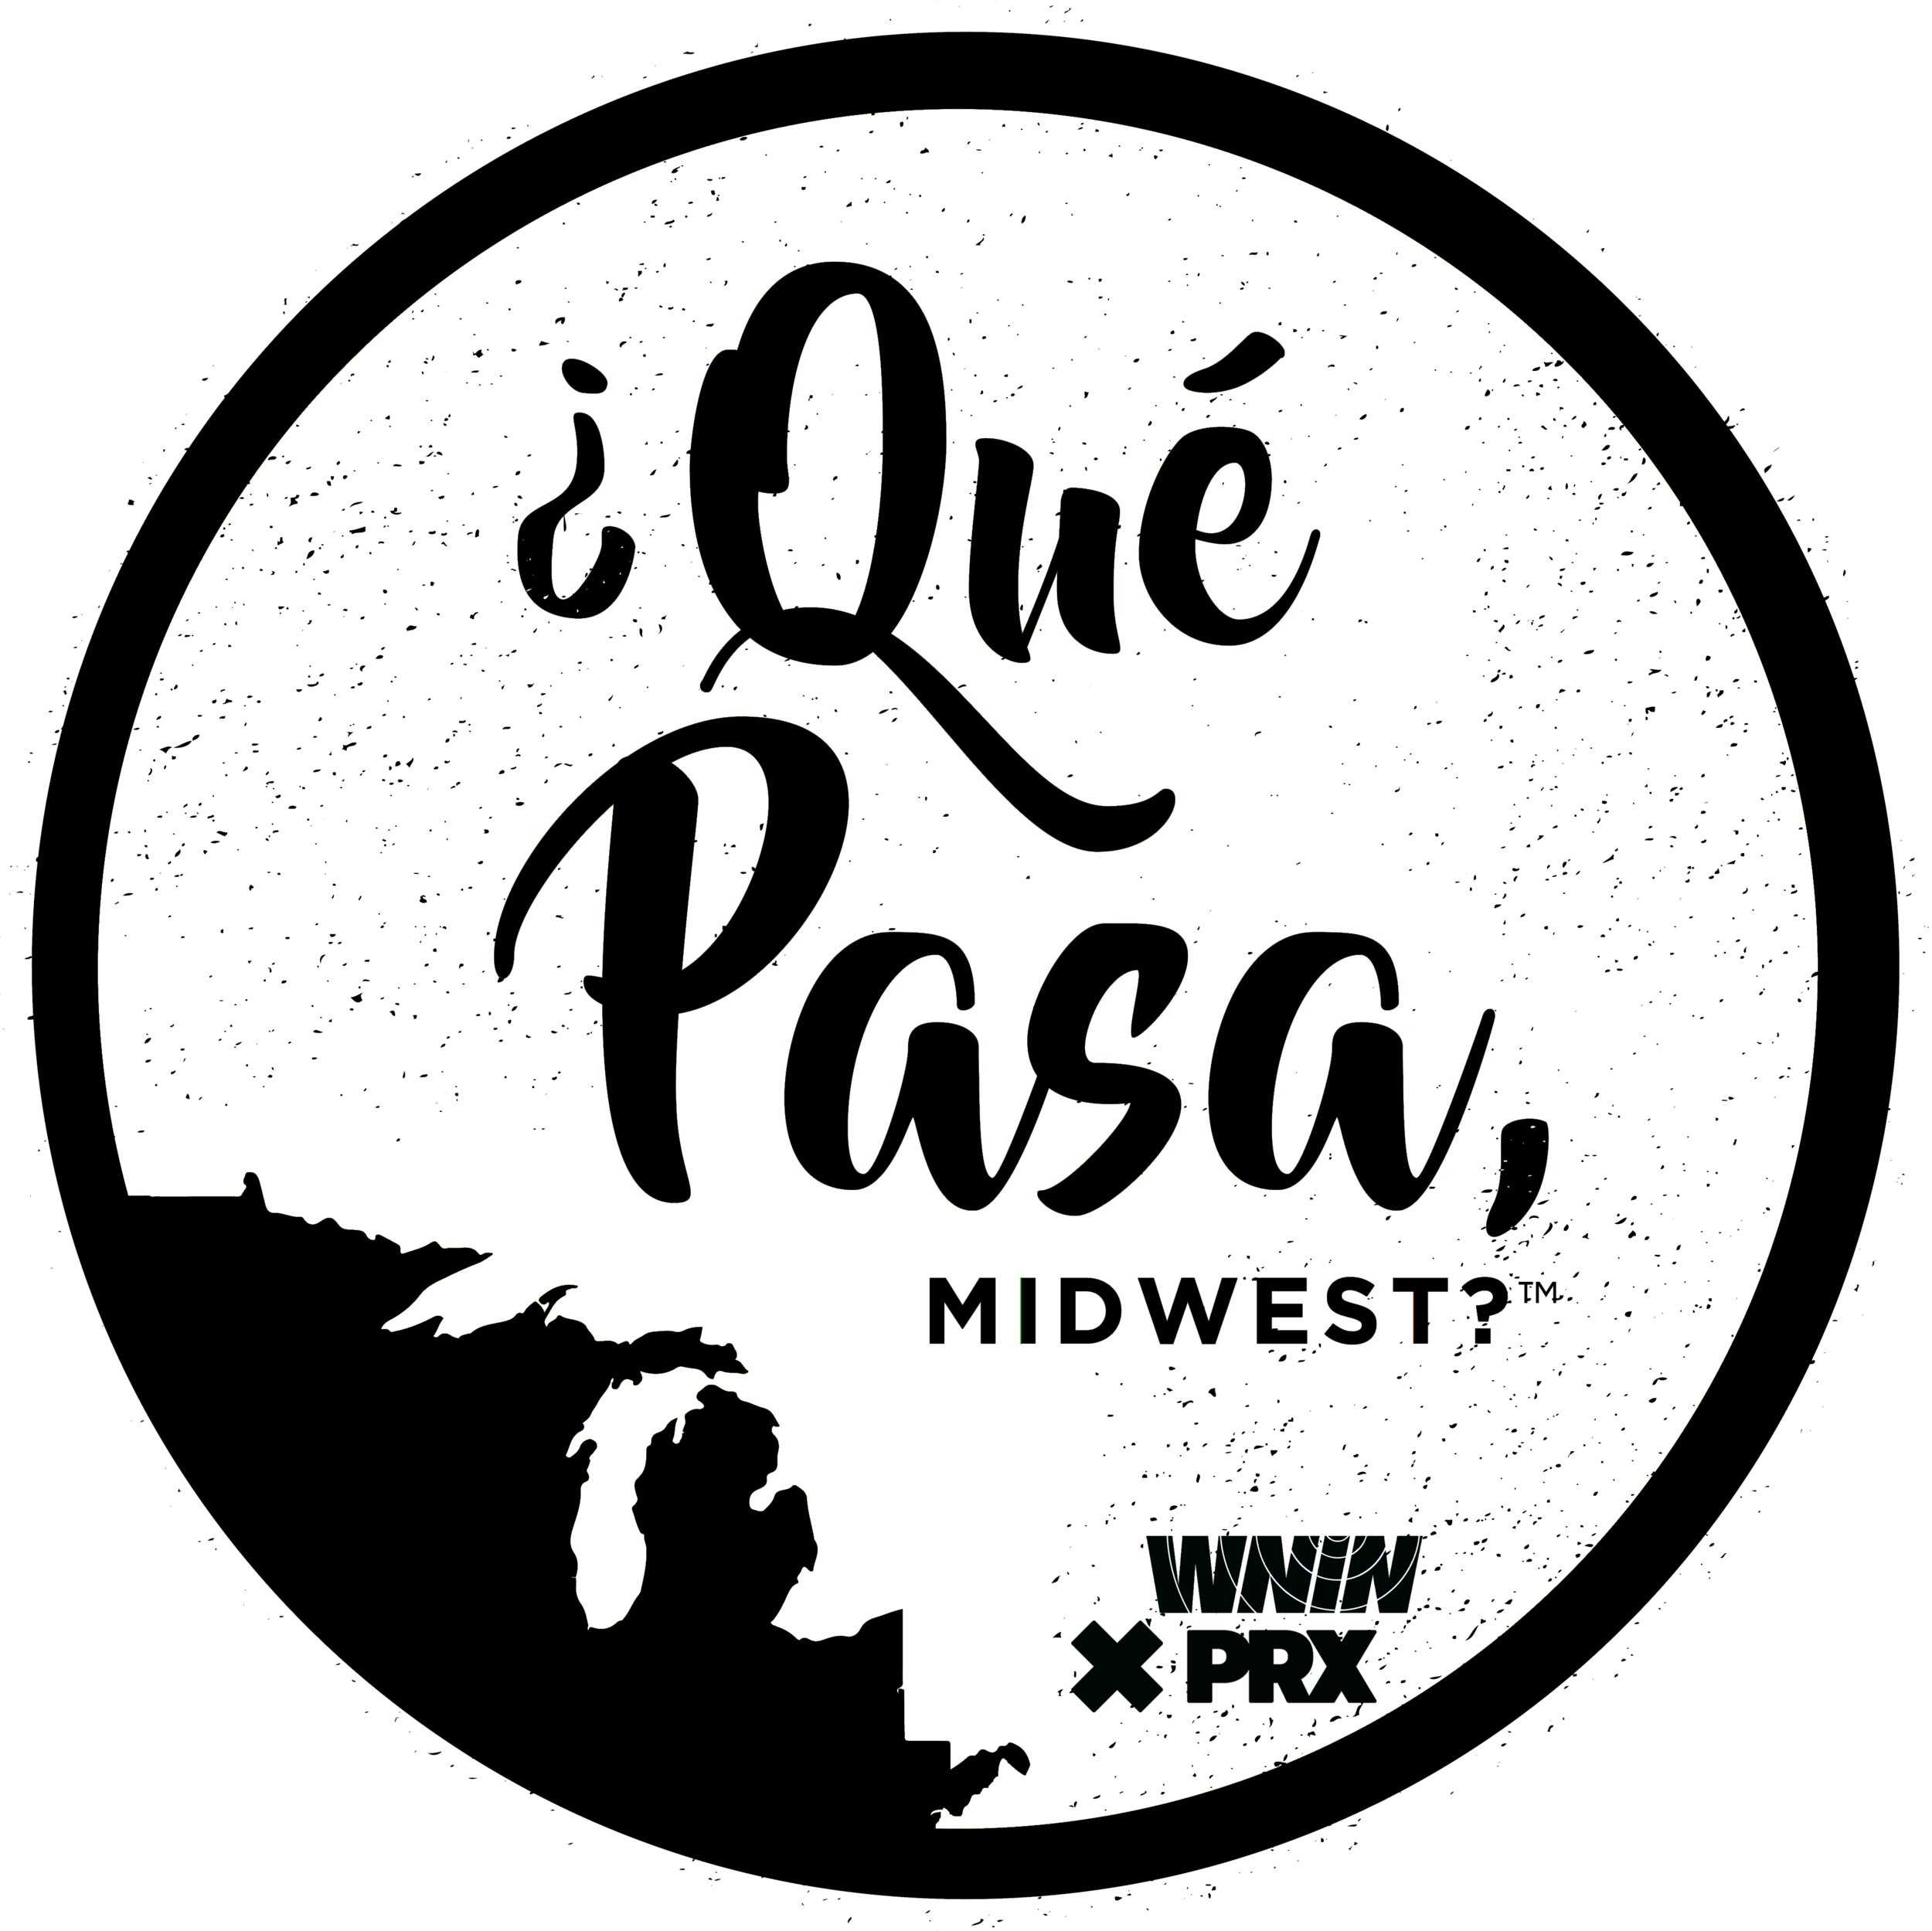 que-pasa-midwest.png